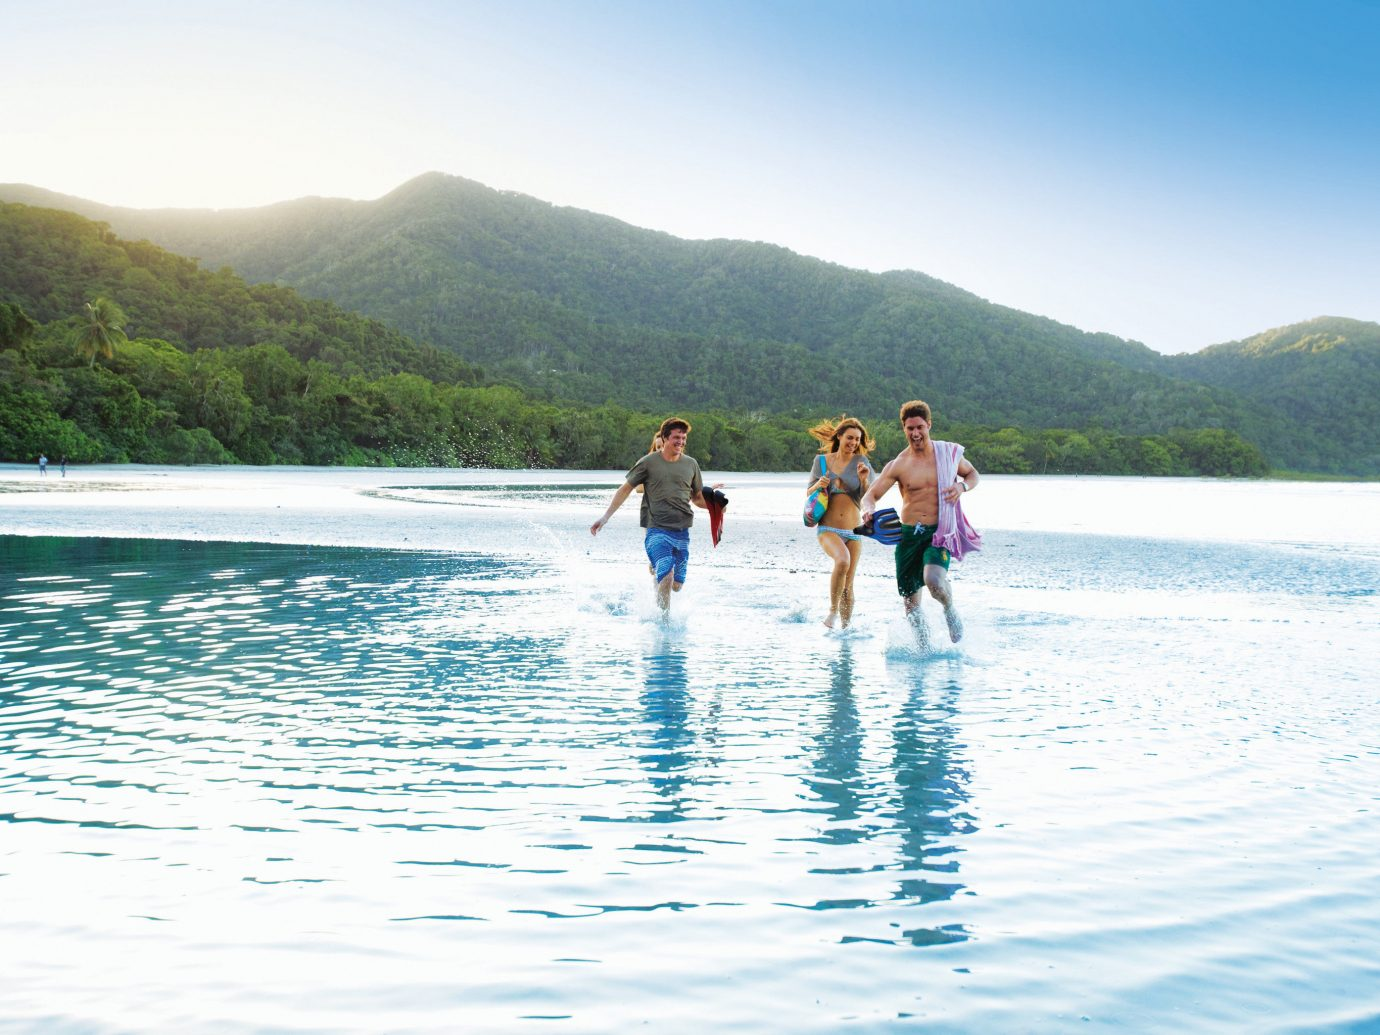 Travel Tips Trip Ideas water mountain sky outdoor Lake vacation Nature Sea boating swimming